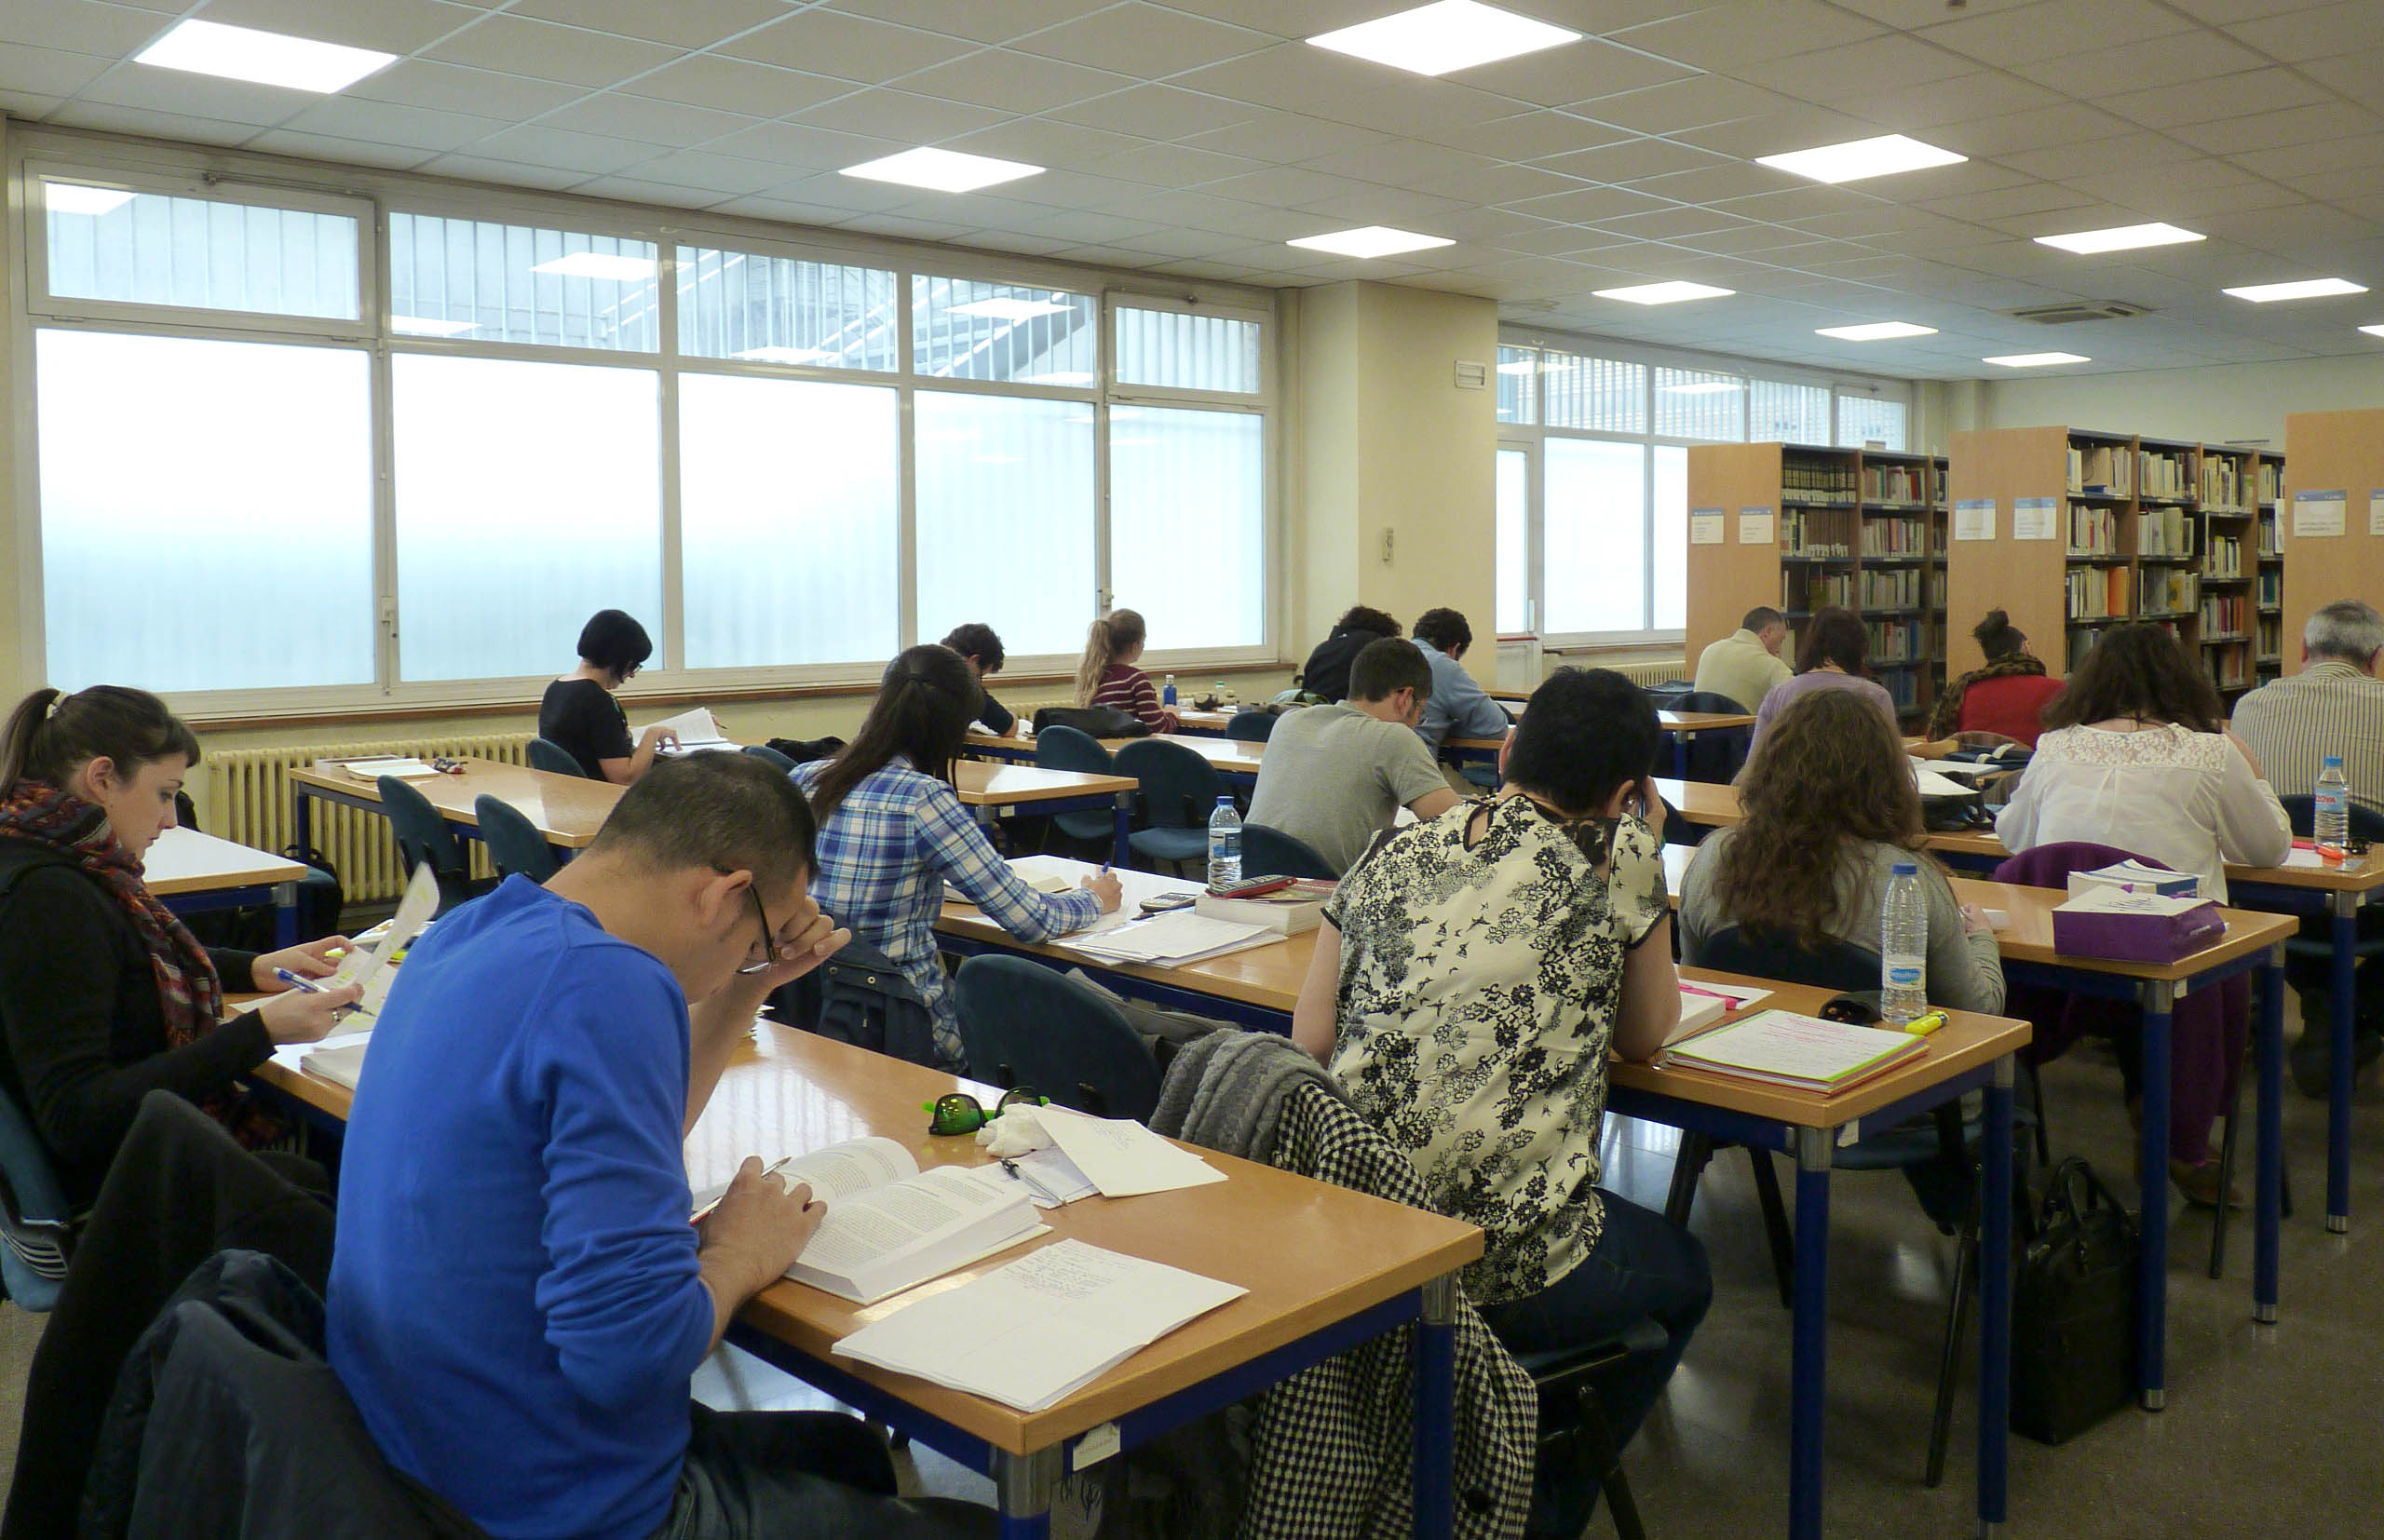 Uned pamplona for Biblioteca uned